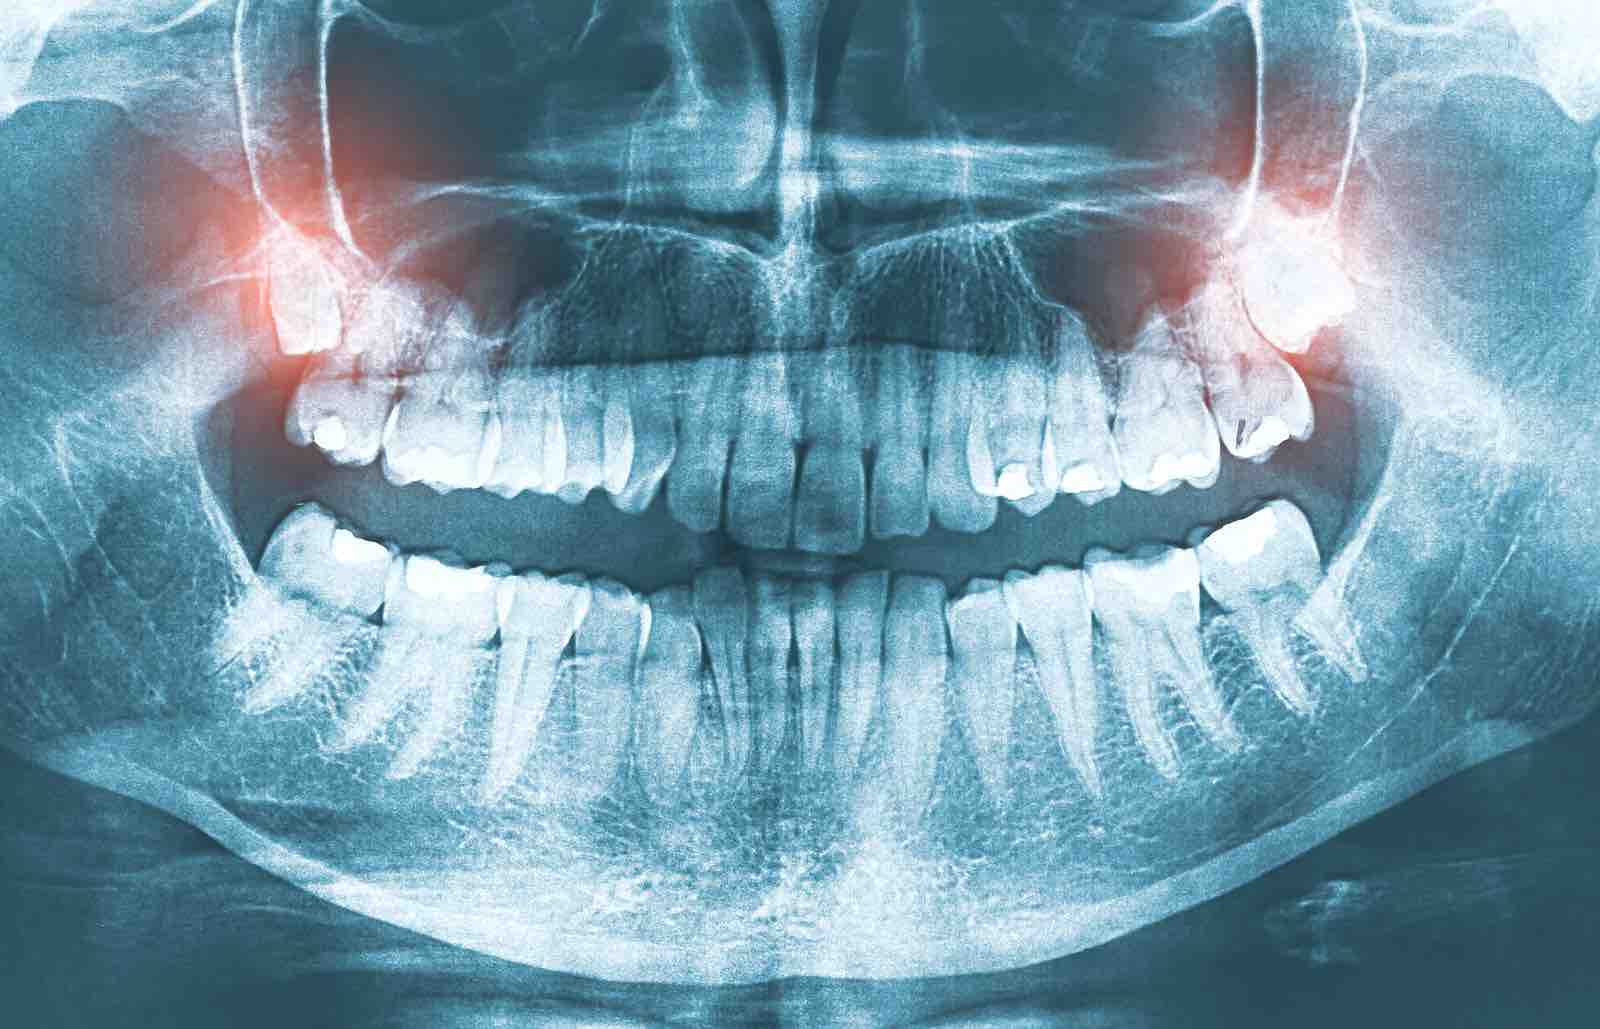 Wisdom teeth and tooth extractions at Bellaire's Bright Value Dental.